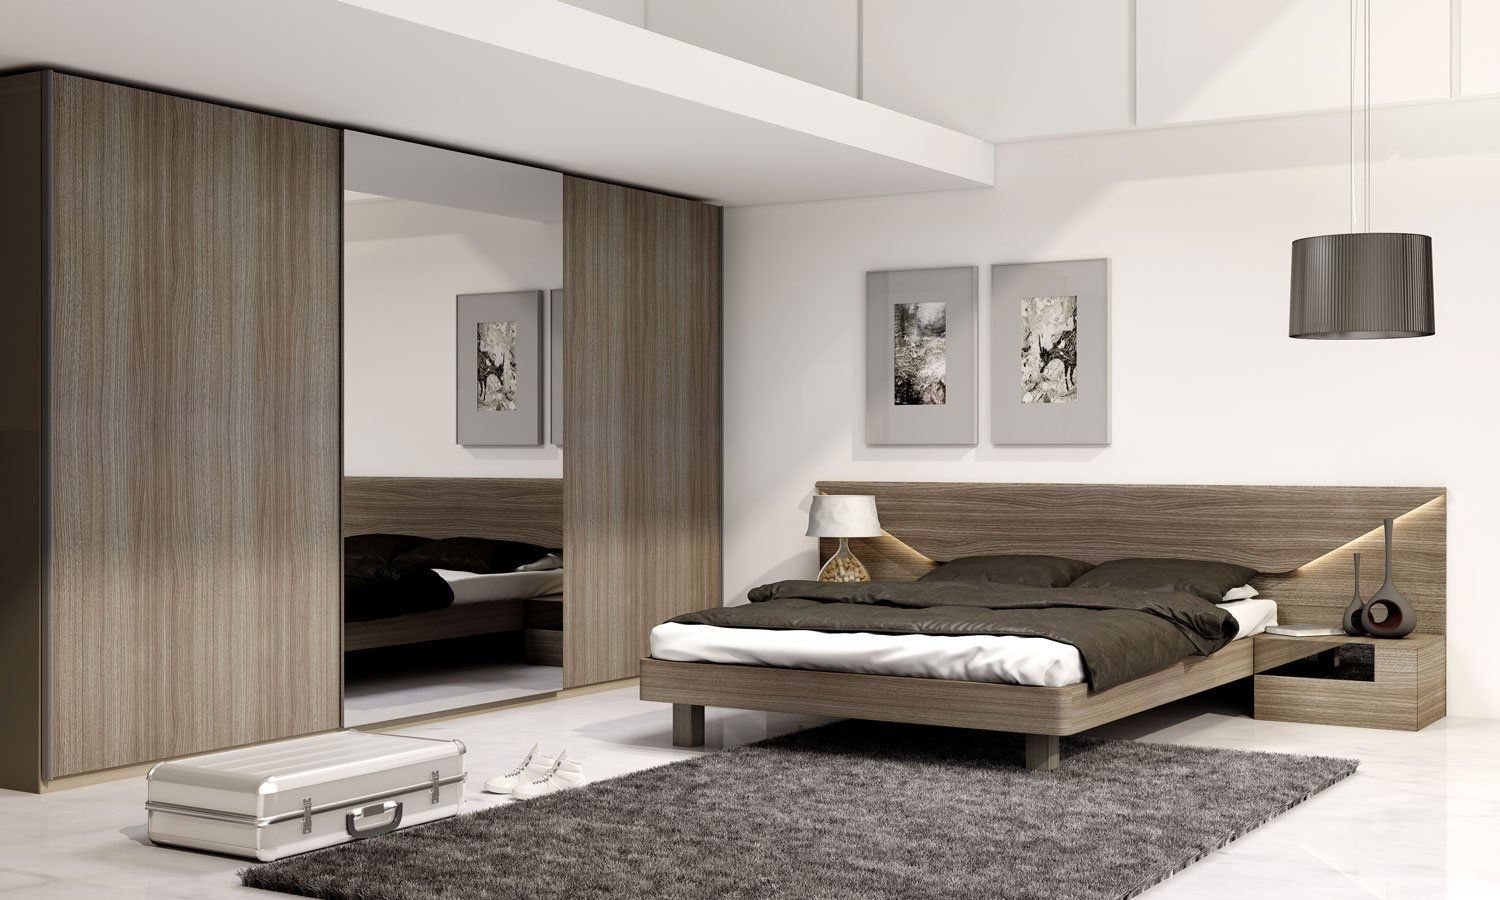 Frameless Sliding Wardrobe with Full Panel in combination of Woodgrain and Mirror